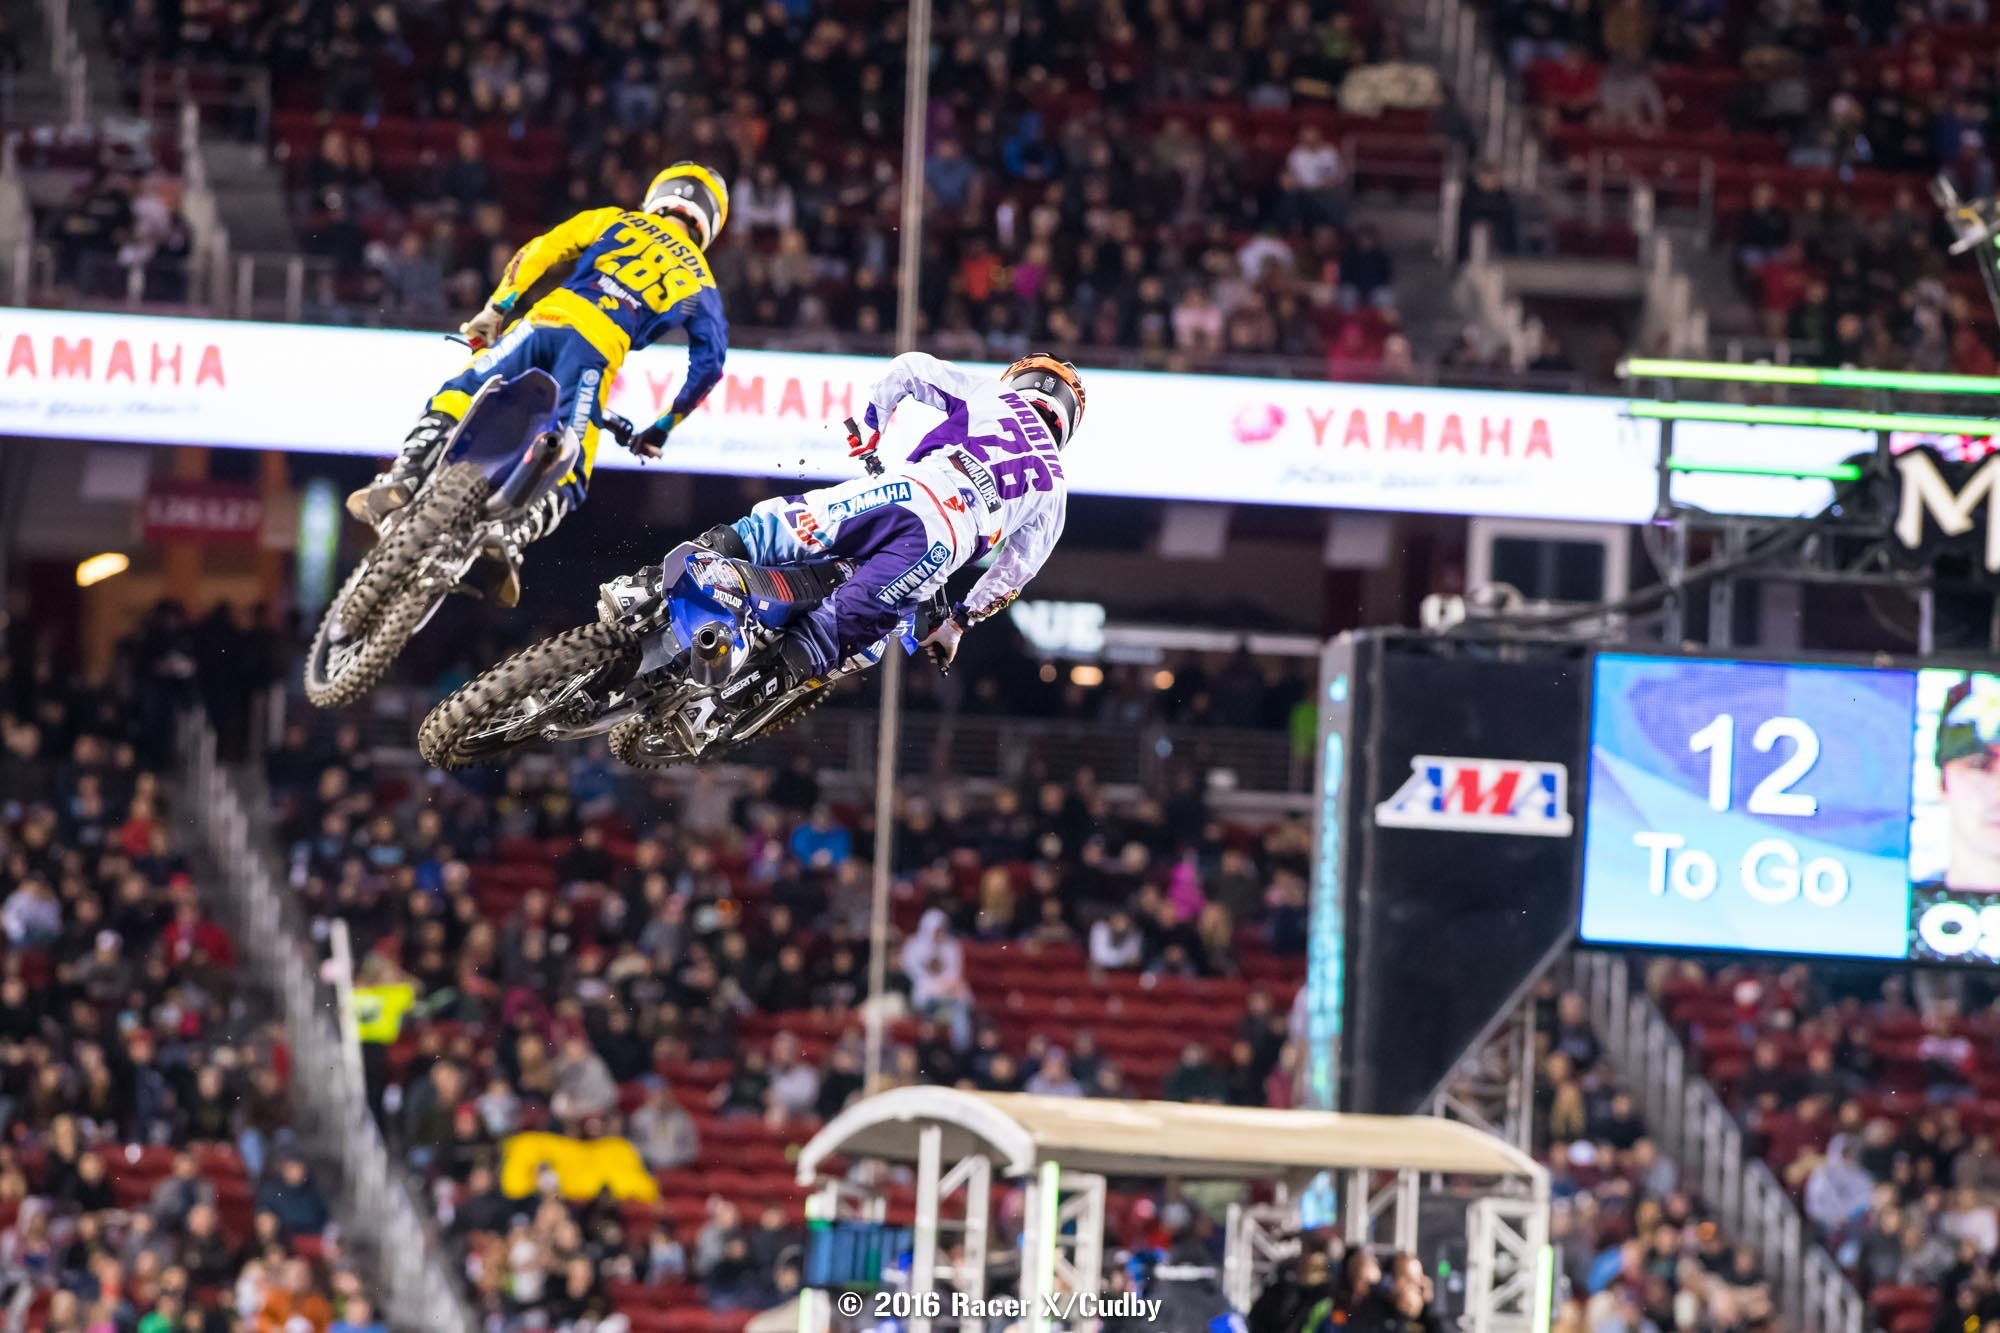 Both Mitchell Harrison and Alex Martin looked great, and if they hadn't gone down there could have easily been three Star Racing riders in the top five.